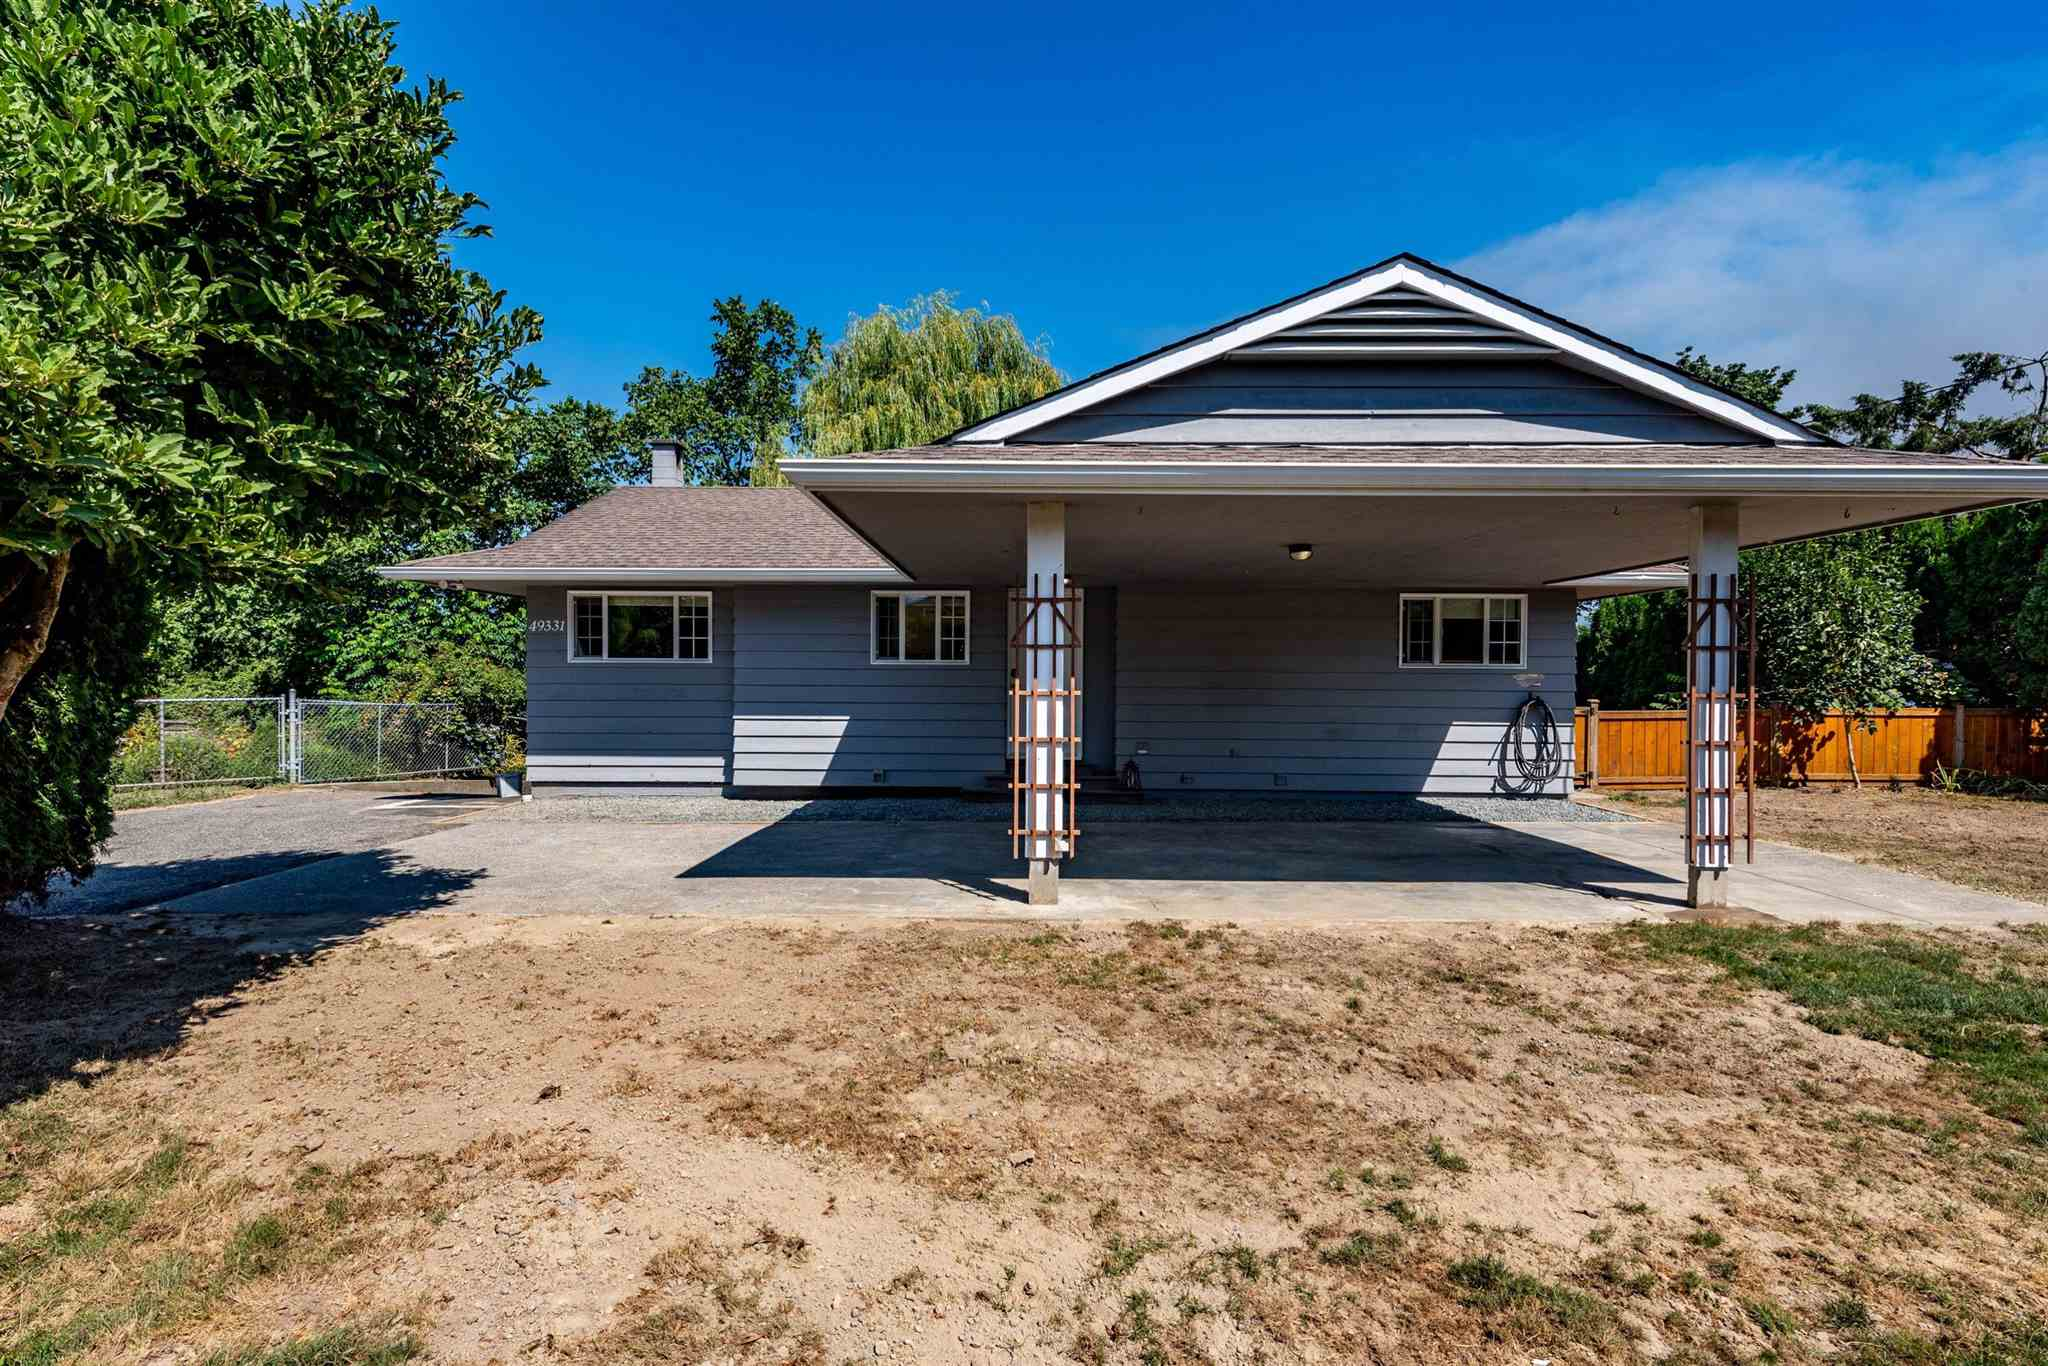 49331 YALE ROAD - East Chilliwack House/Single Family for sale, 4 Bedrooms (R2605420) - #1